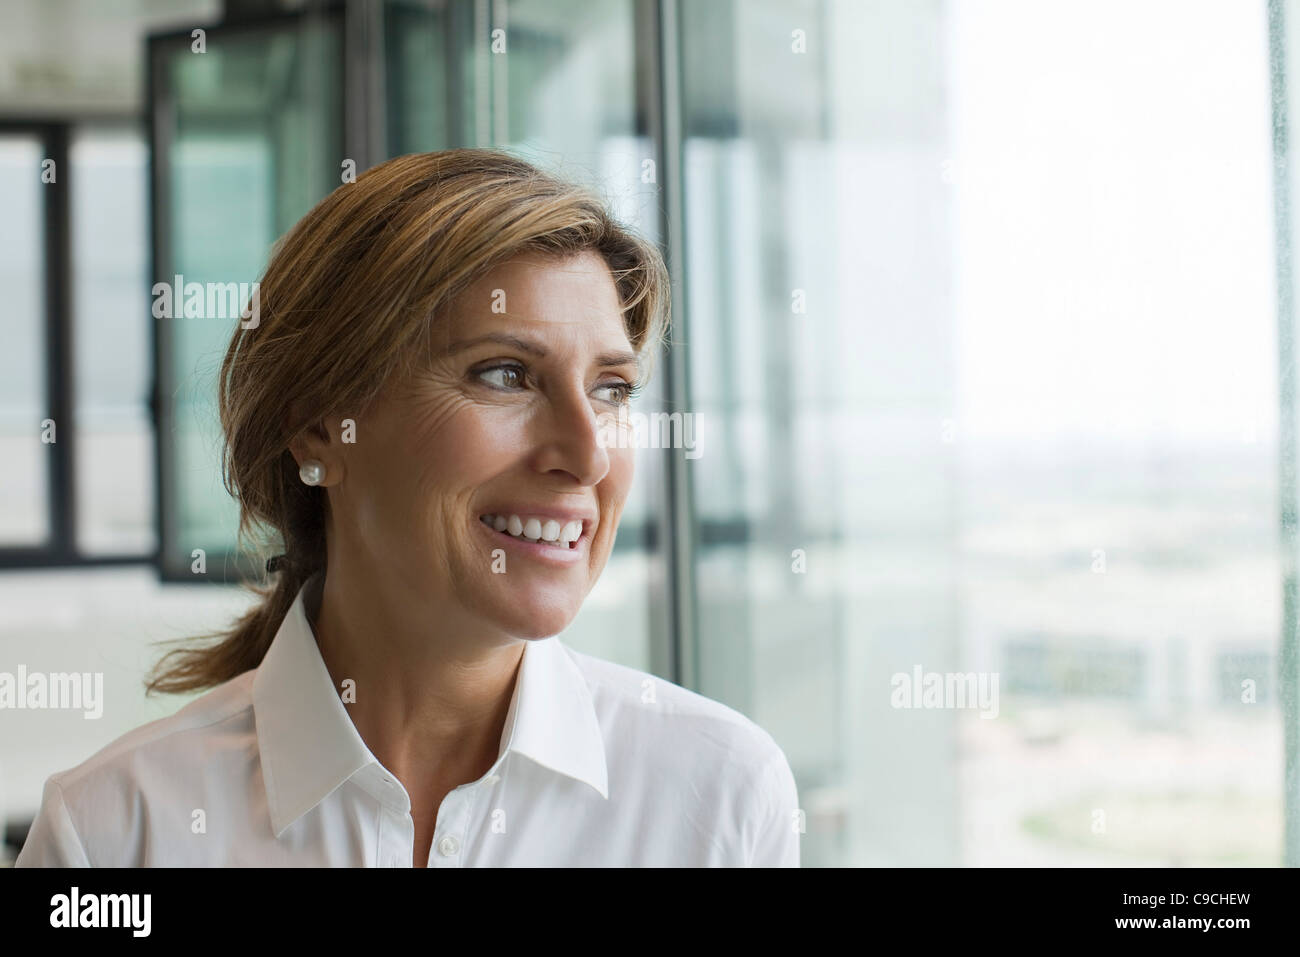 Professional woman smiling - Stock Image